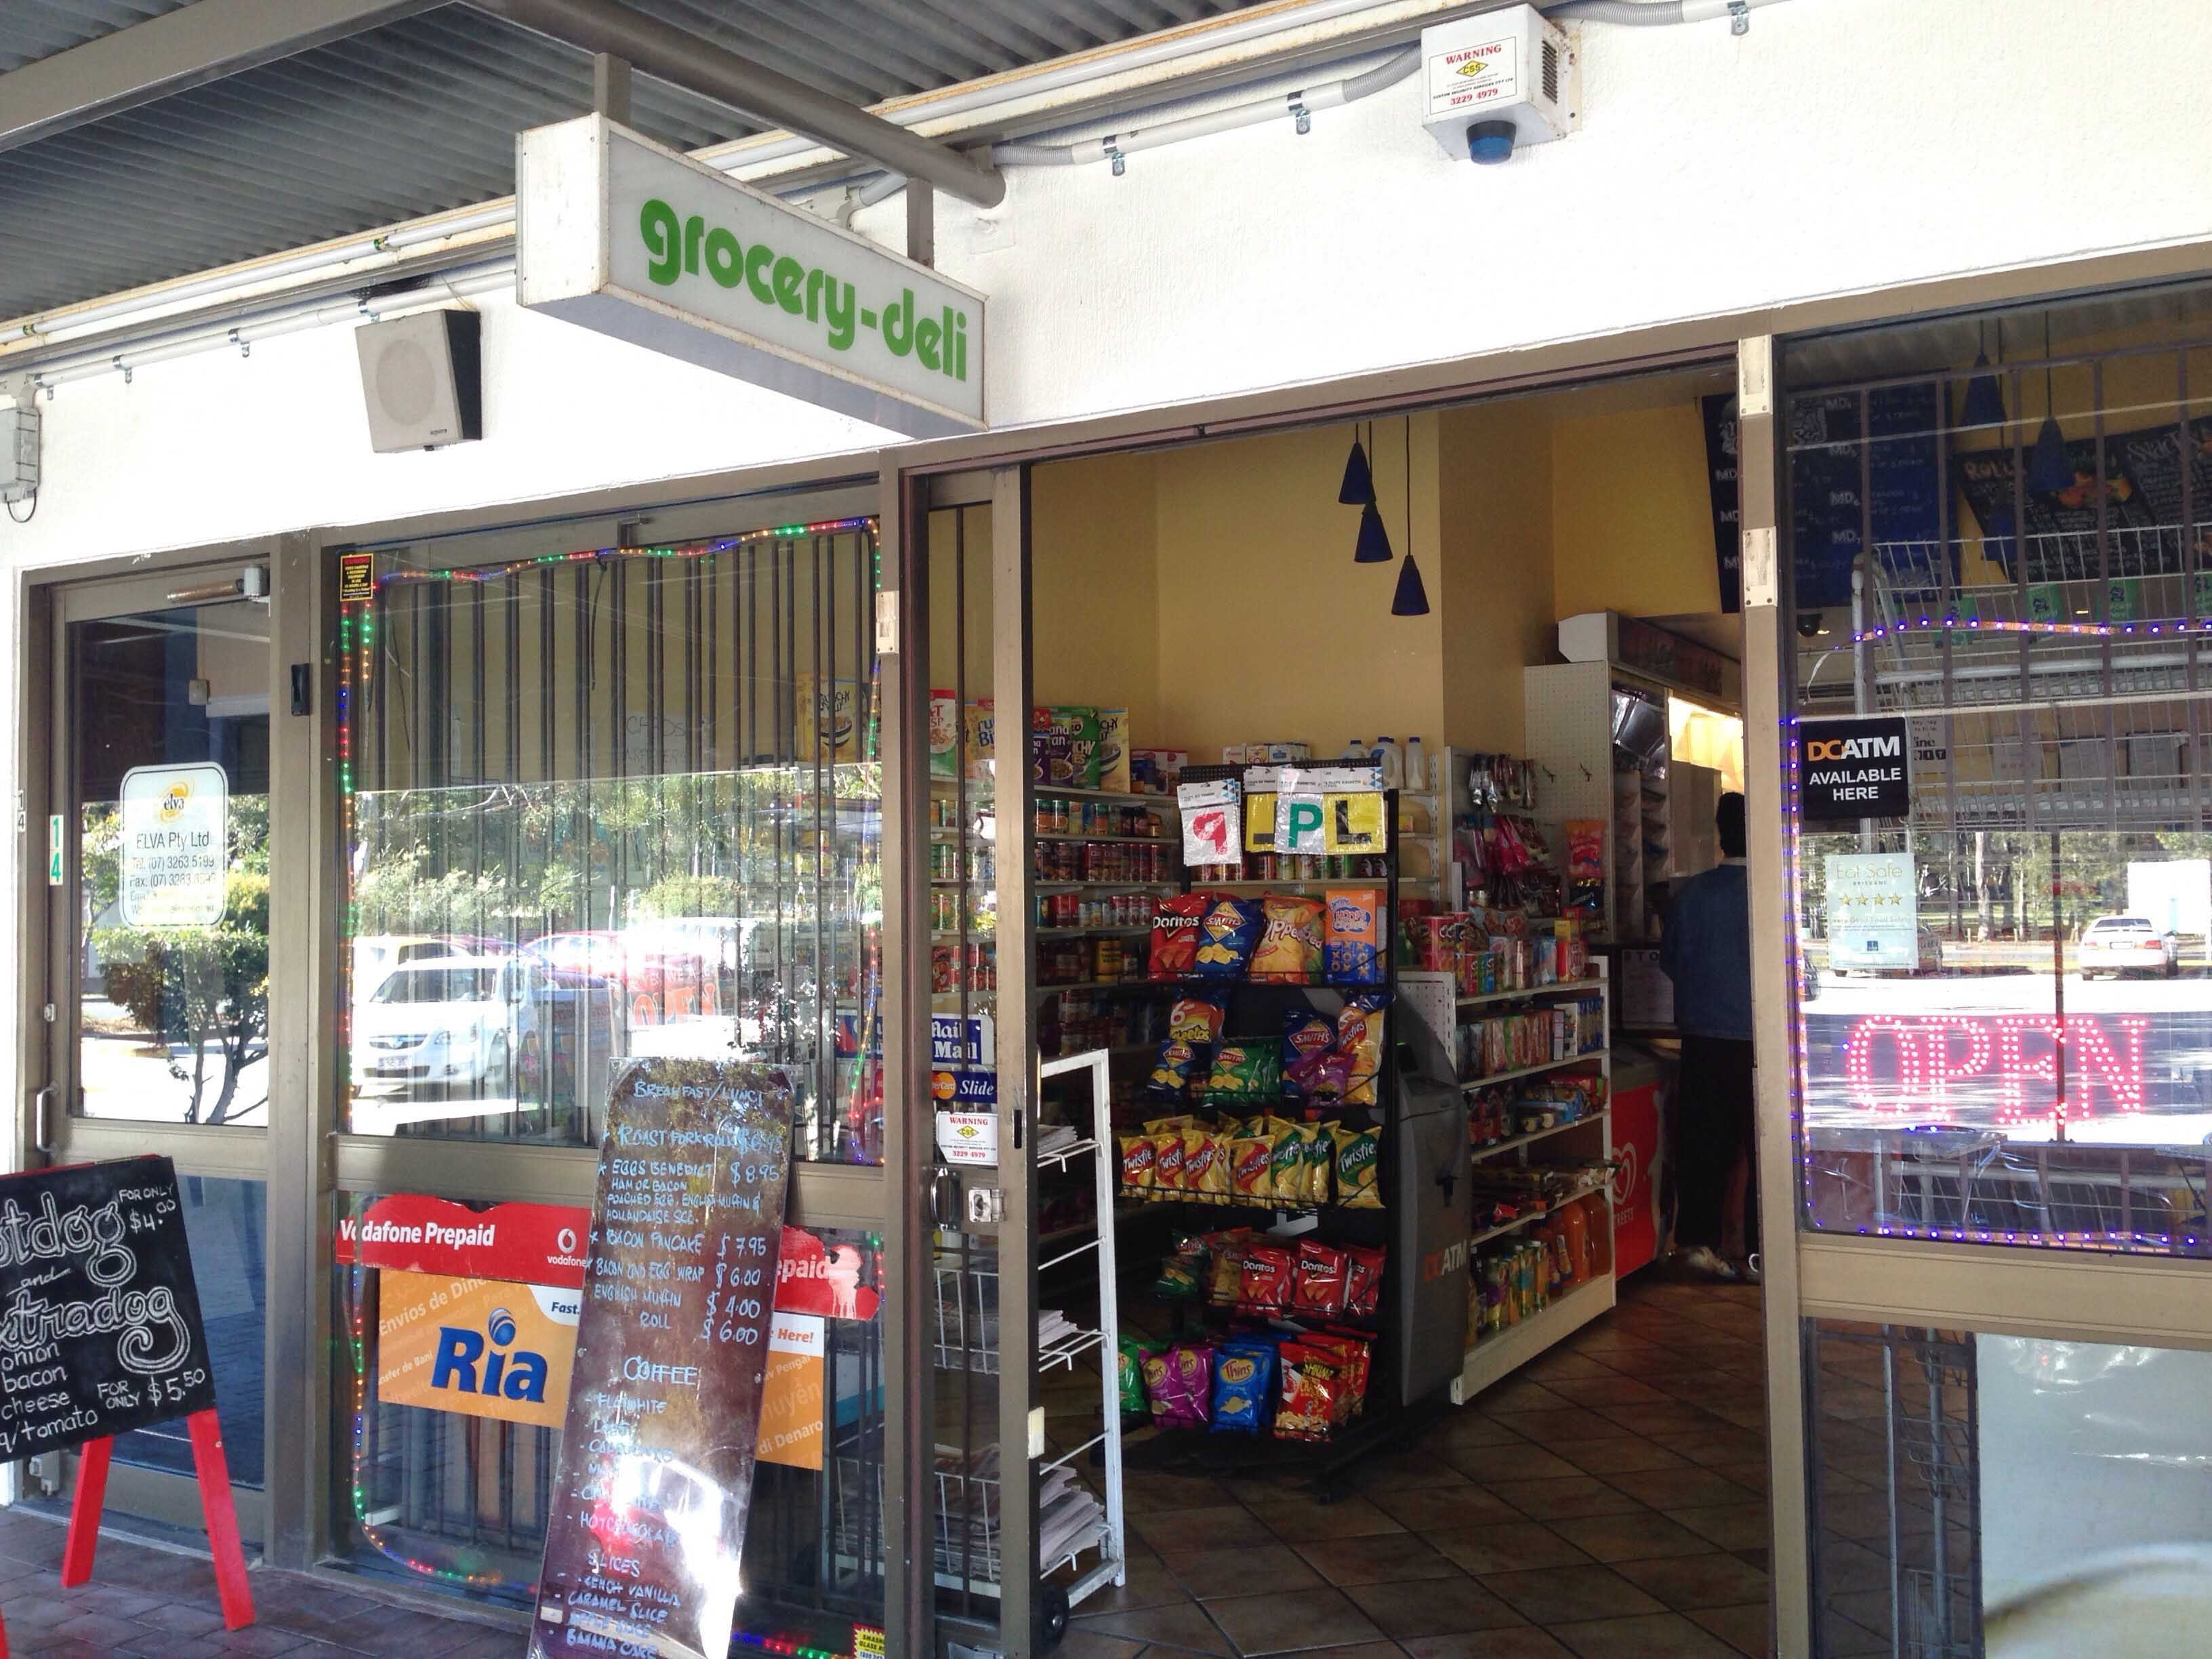 Grocery Deli - Mount Gambier Accommodation